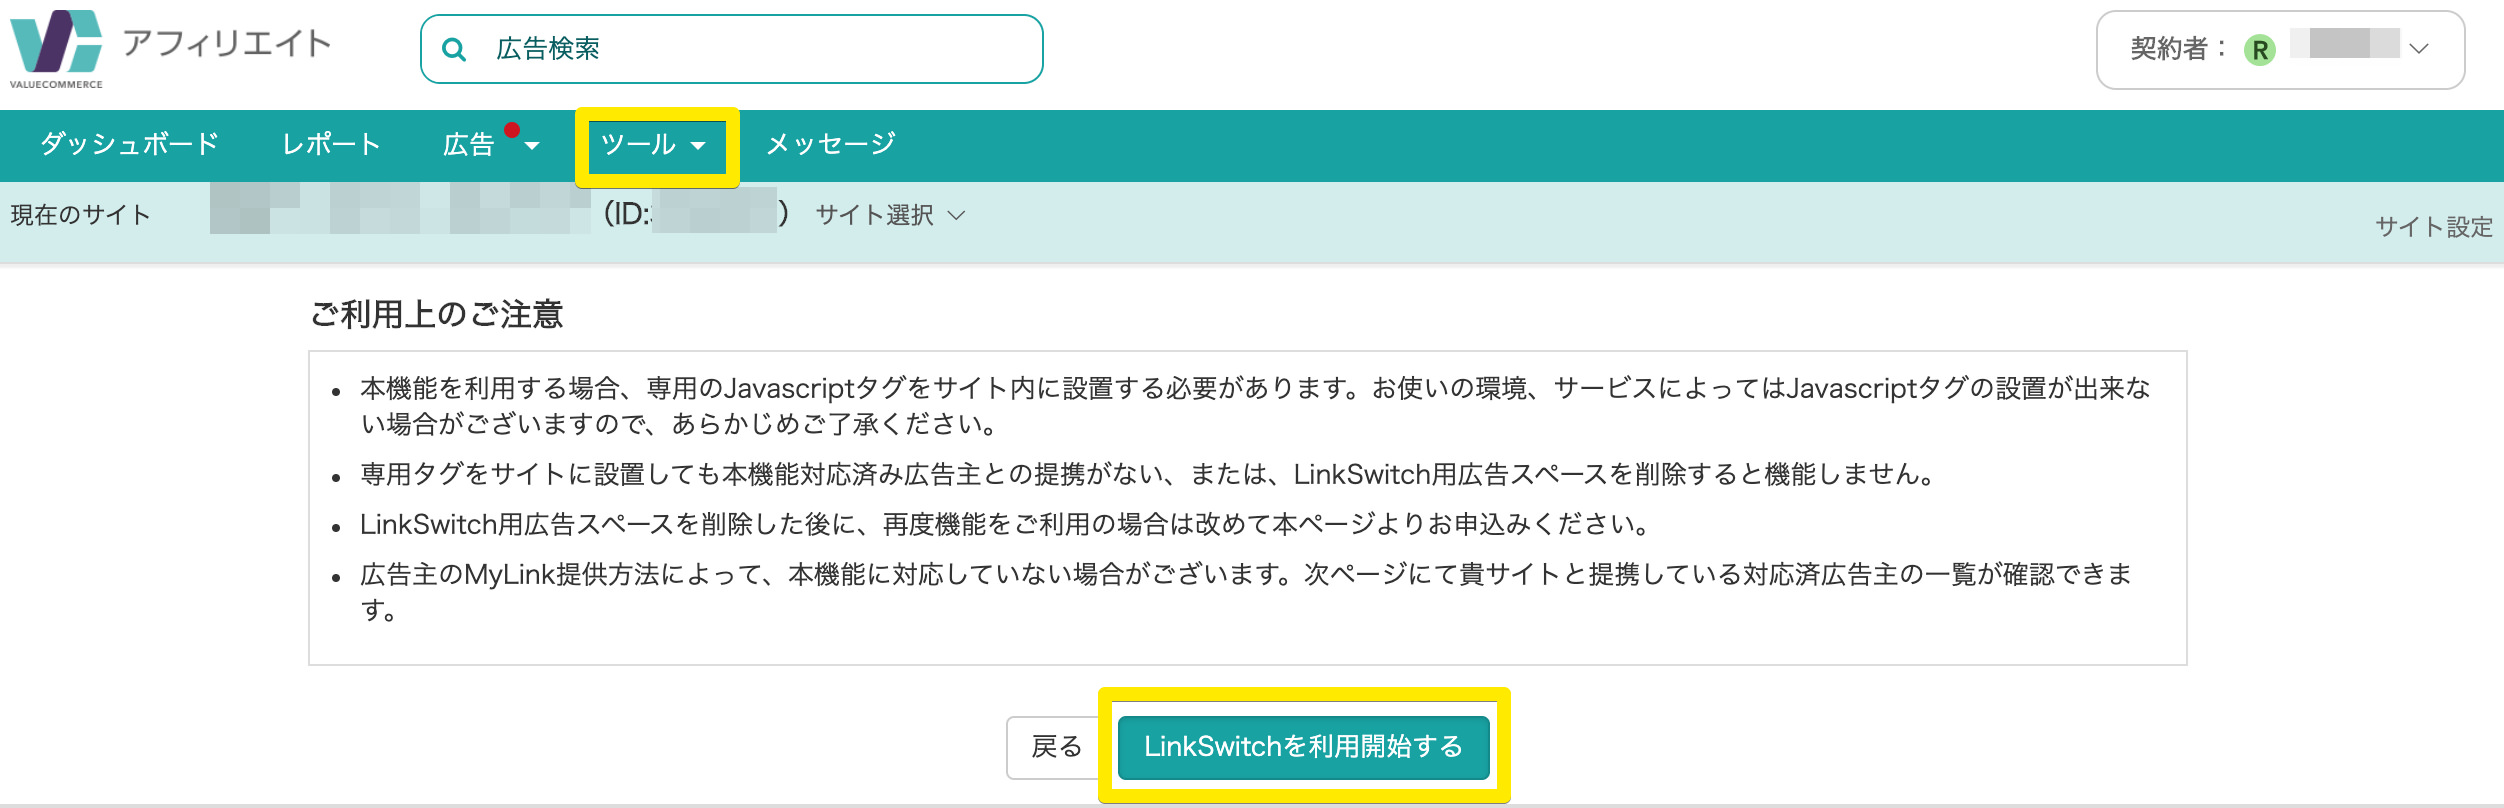 LinkSwitchタグの設定